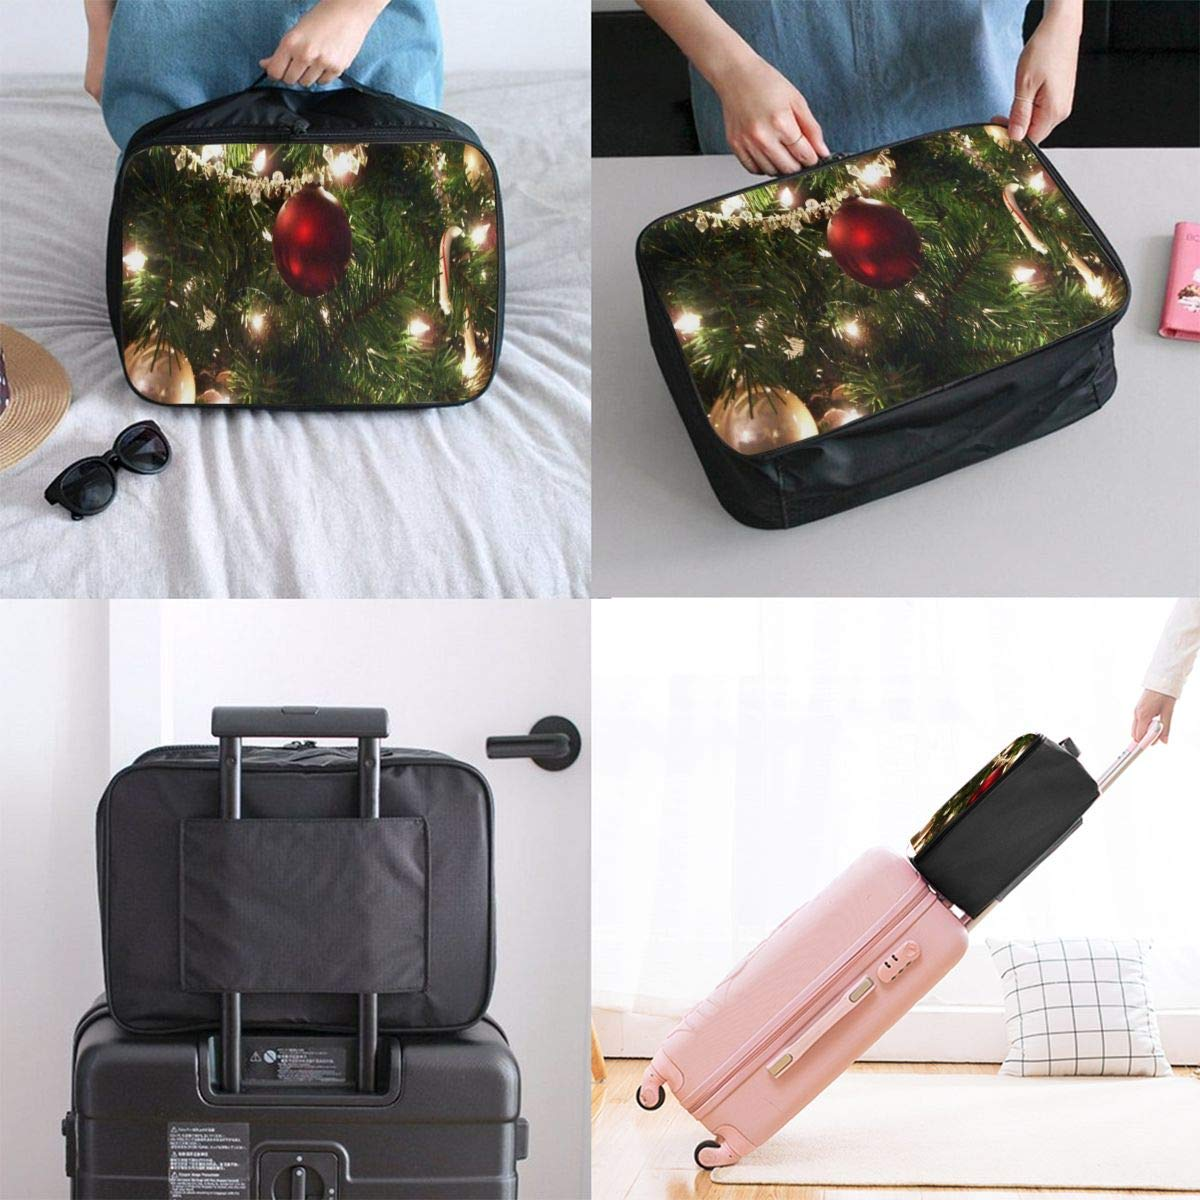 Lightweight Large Capacity Portable Luggage Bag Christmas Tree Flame Travel Waterproof Foldable Storage Carry Tote Bag